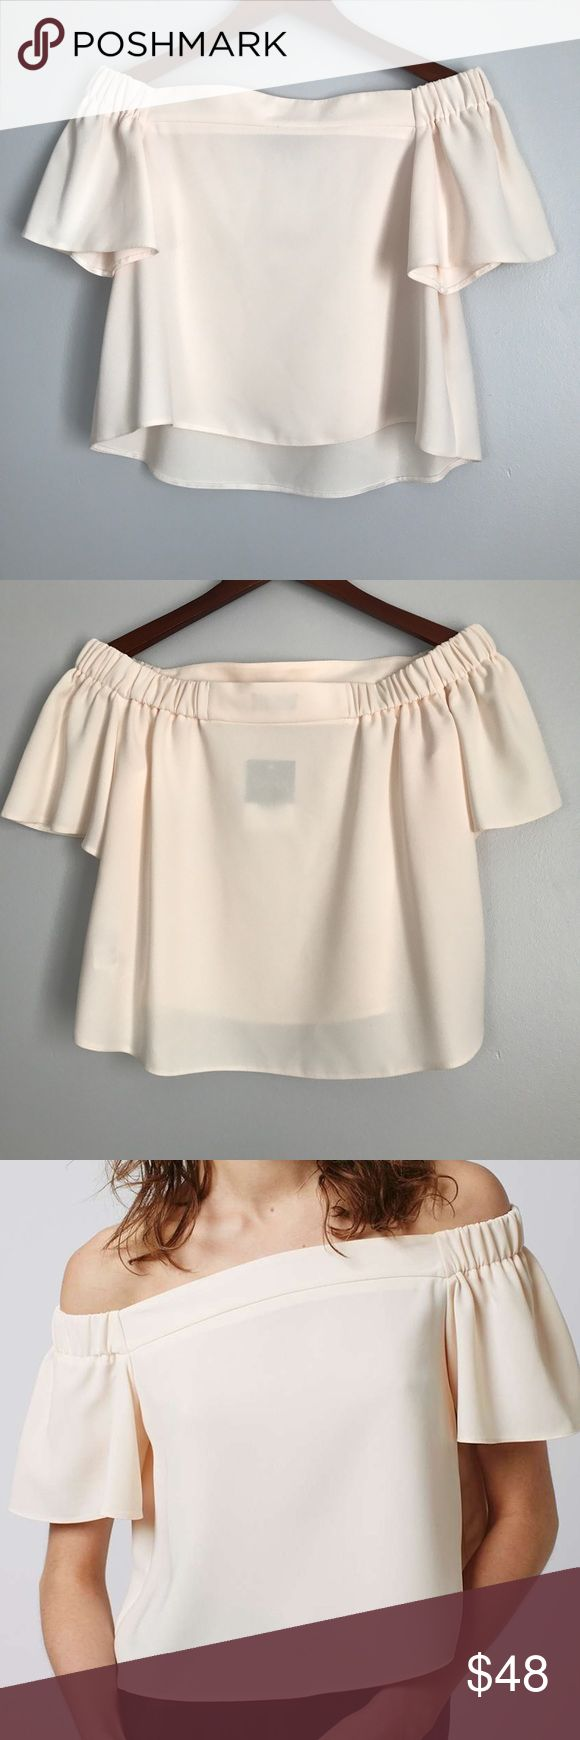 Topshop Make Offer Livi Bardot Top Bare shoulders are still a favourite. Dress yours up with a structured clean shape in this pale peachy pink bardot top - perfect worn with denim and heels for a stylish finish. 100% Polyester. Machine wash. (NR21815) Topshop Tops